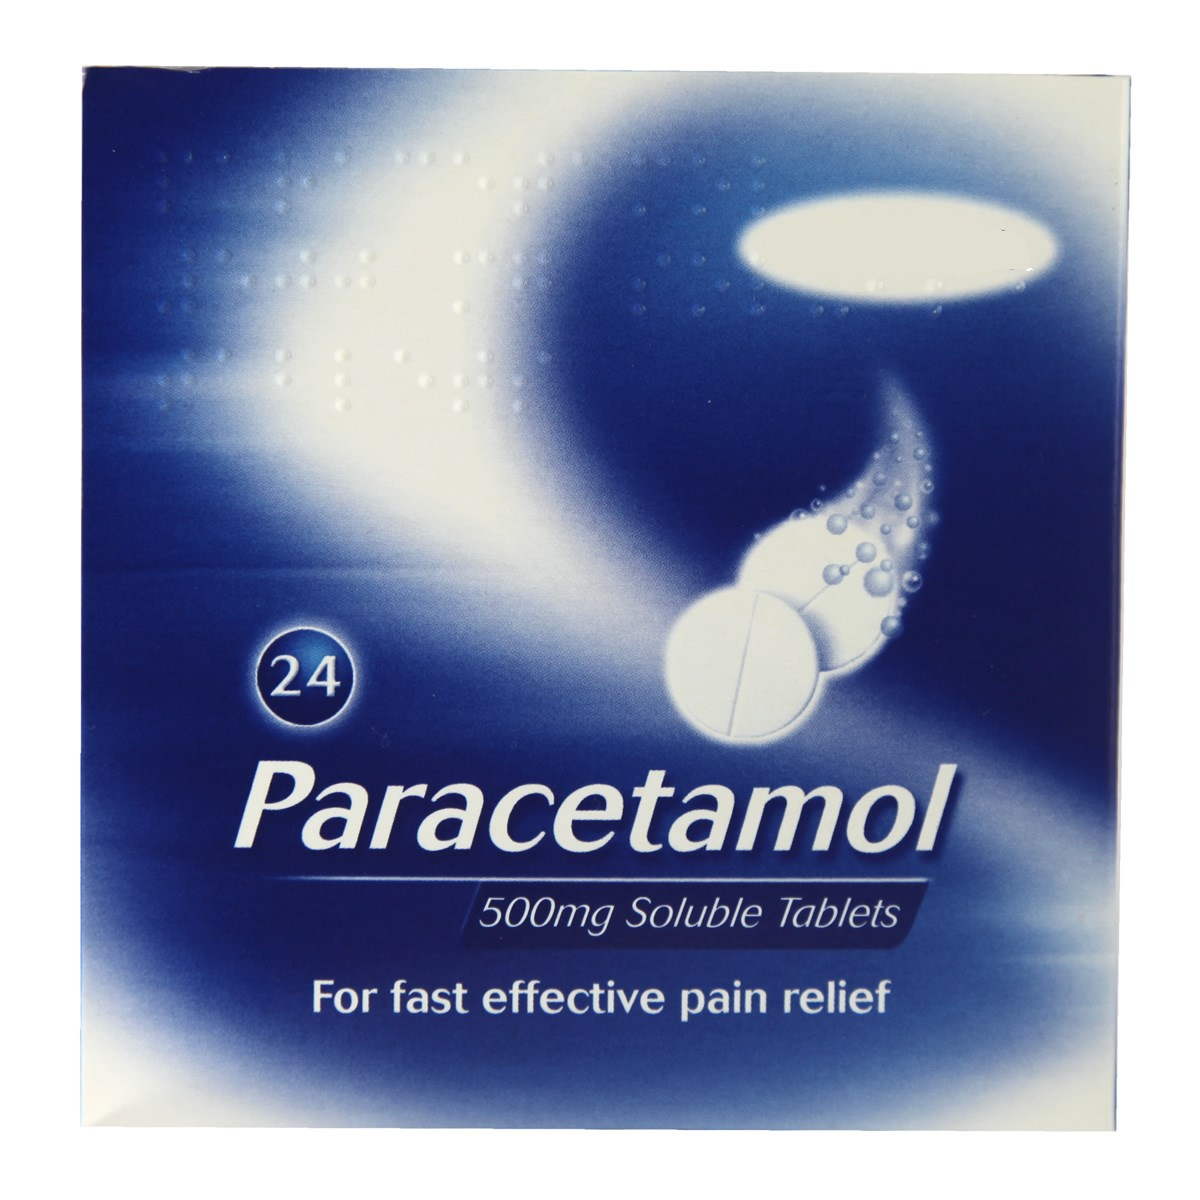 Paracetamol 500mg Soluble Tablets